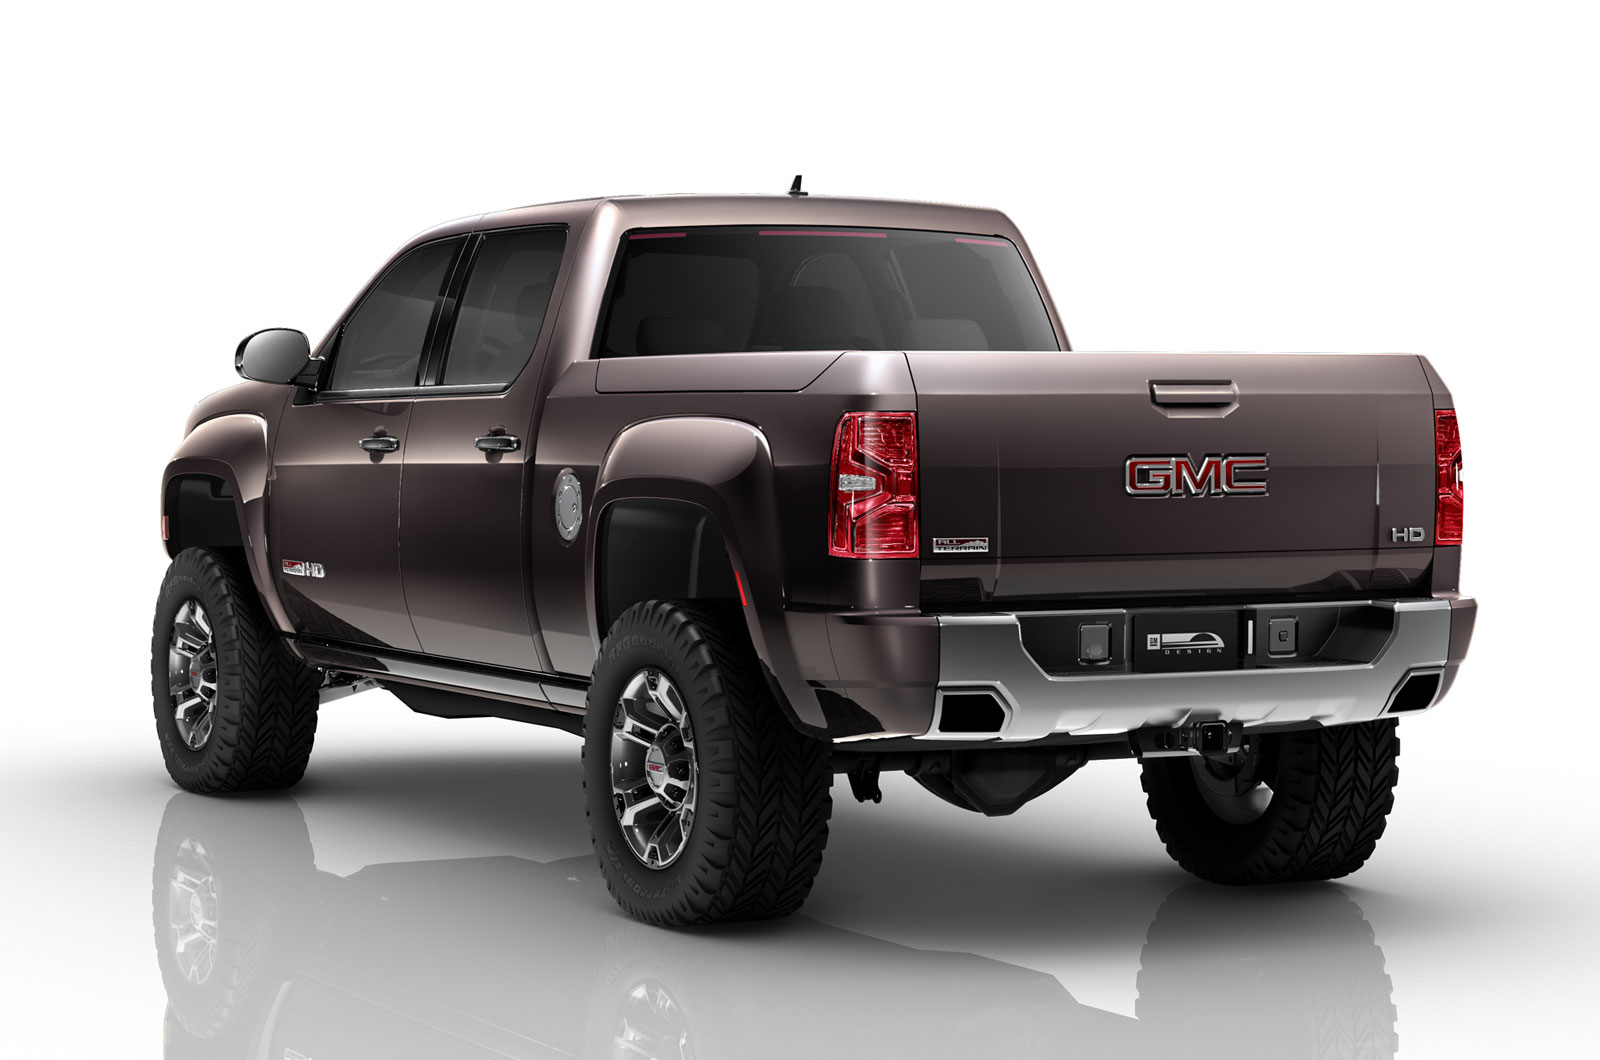 2013 Gmc Sierra Review And Pictures Car Review